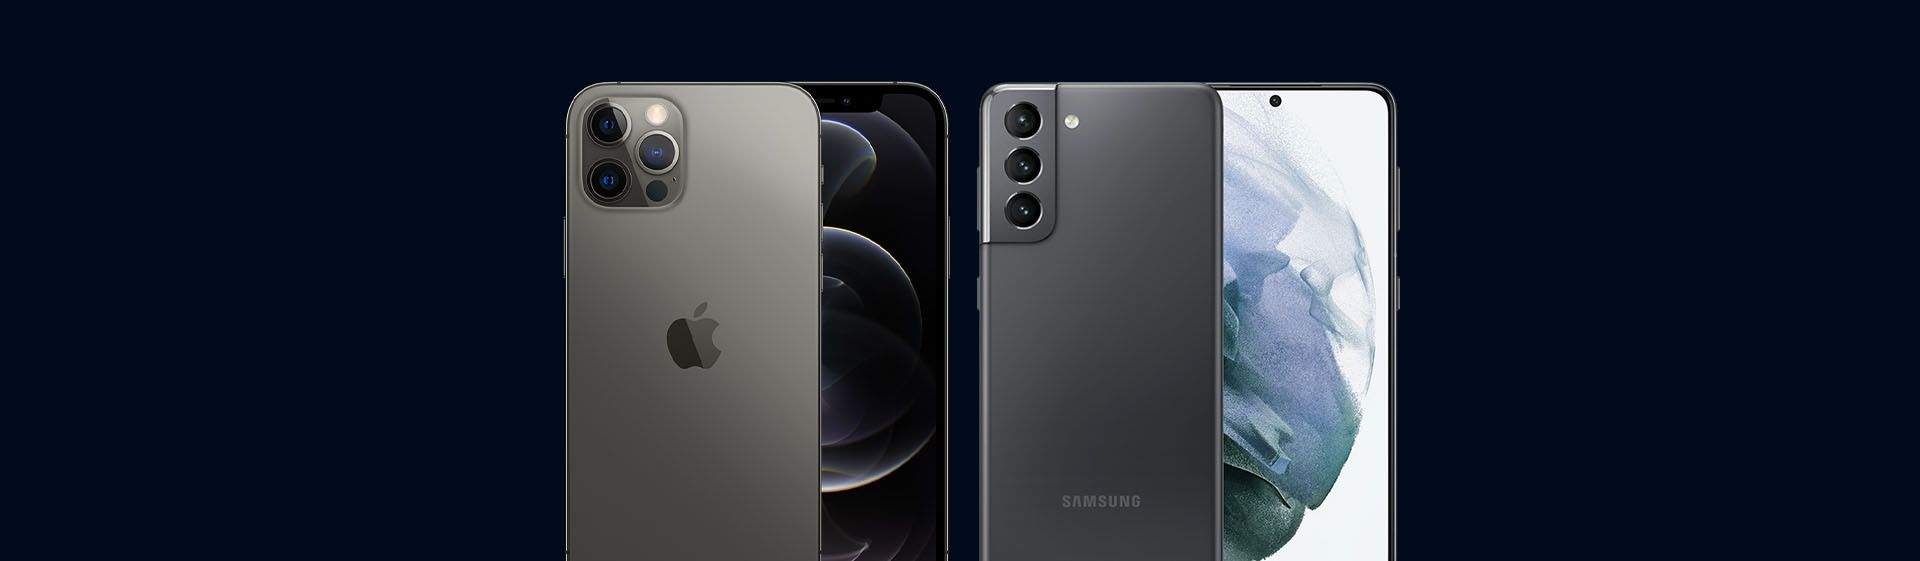 iPhone 12 Pro vs Galaxy S21 Plus: comparativo entre os celulares Apple e Samsung